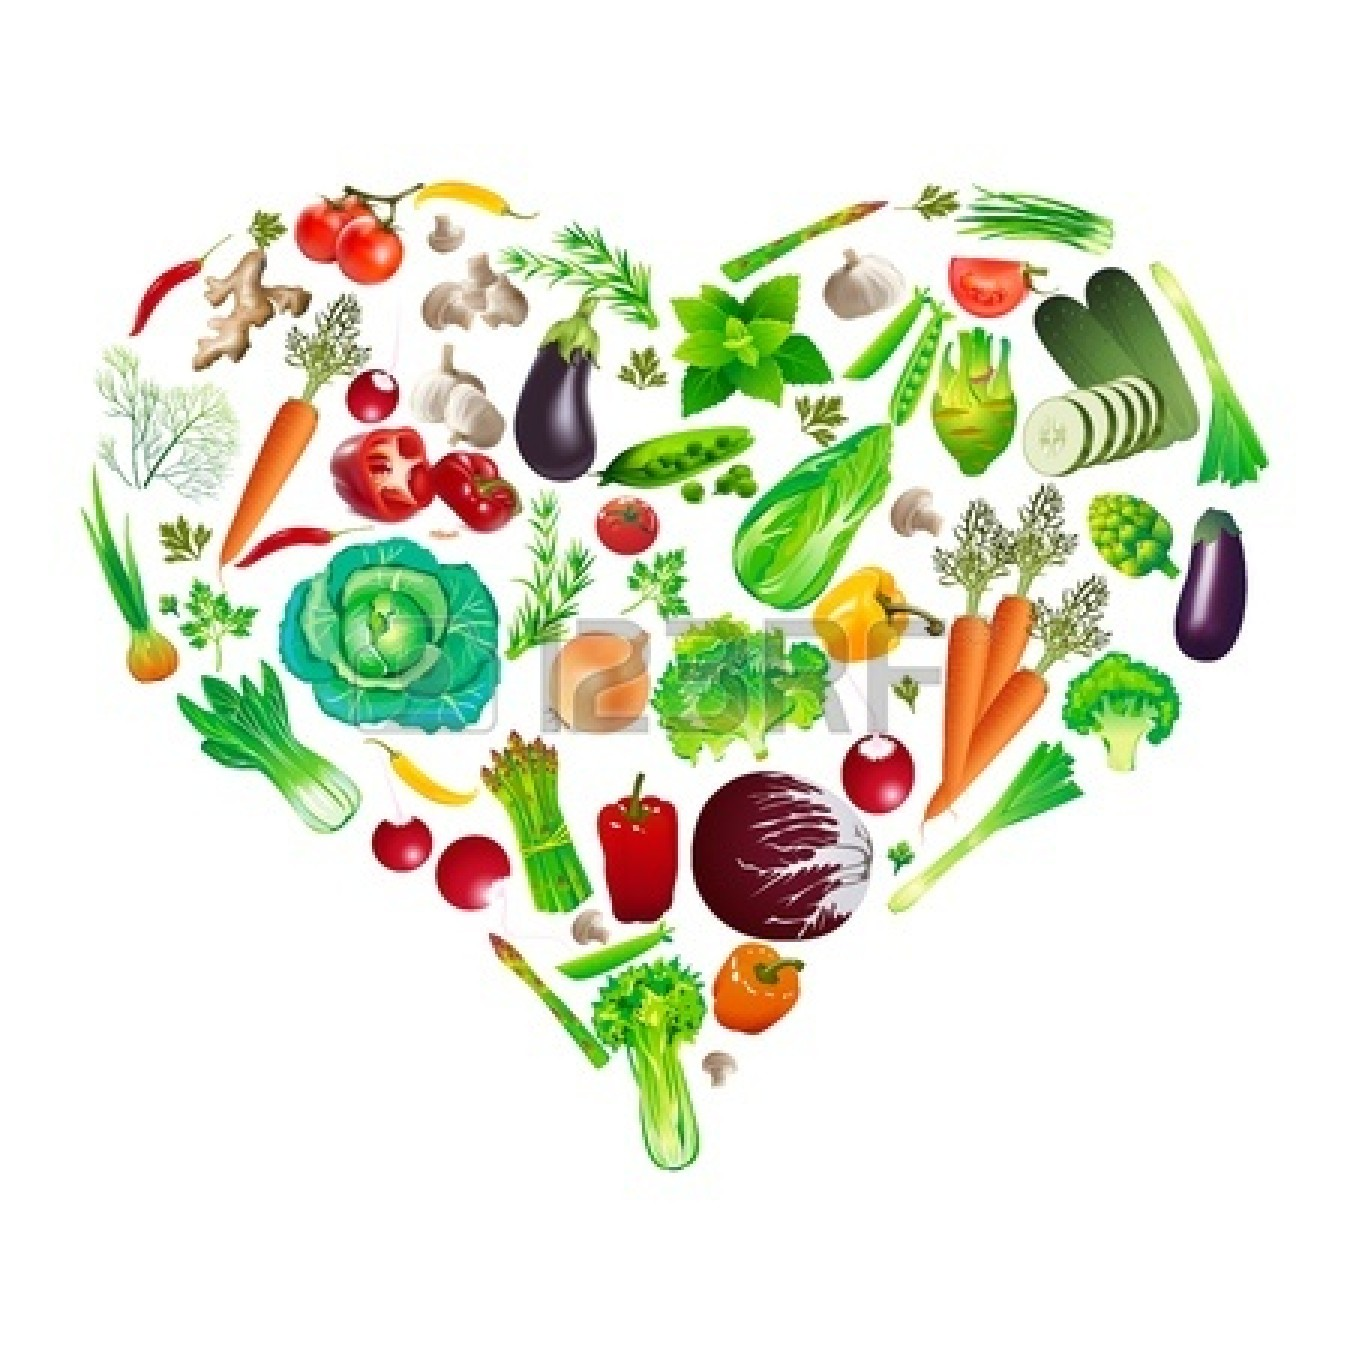 Green vegetables pictures panda. Hearts clipart vegetable